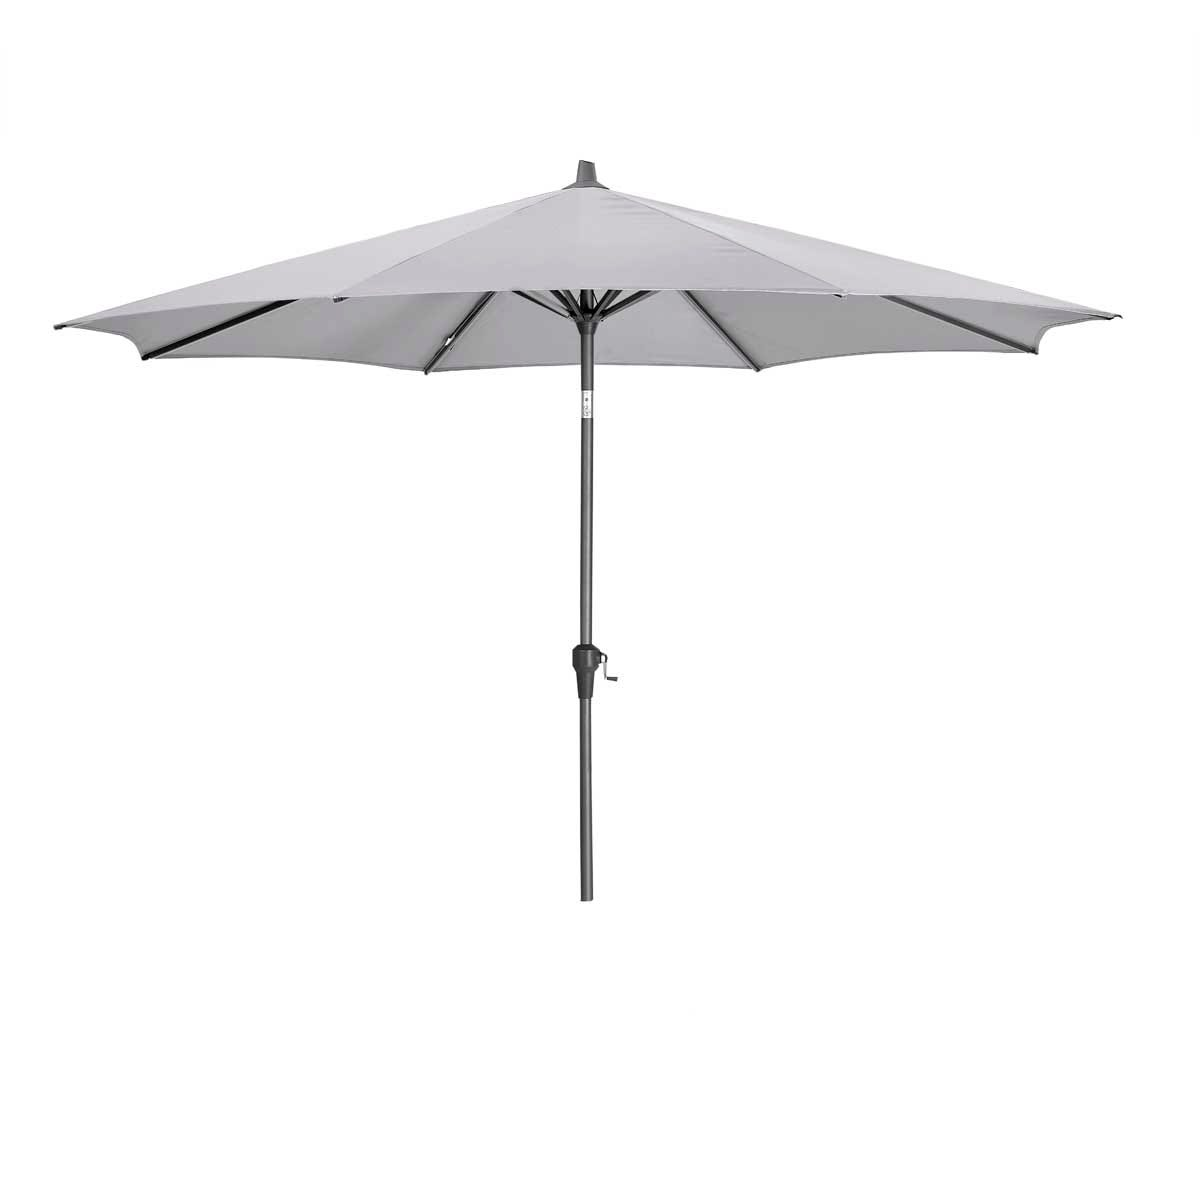 Platinum Riva 3m Round Parasol (base not included) - Light Grey